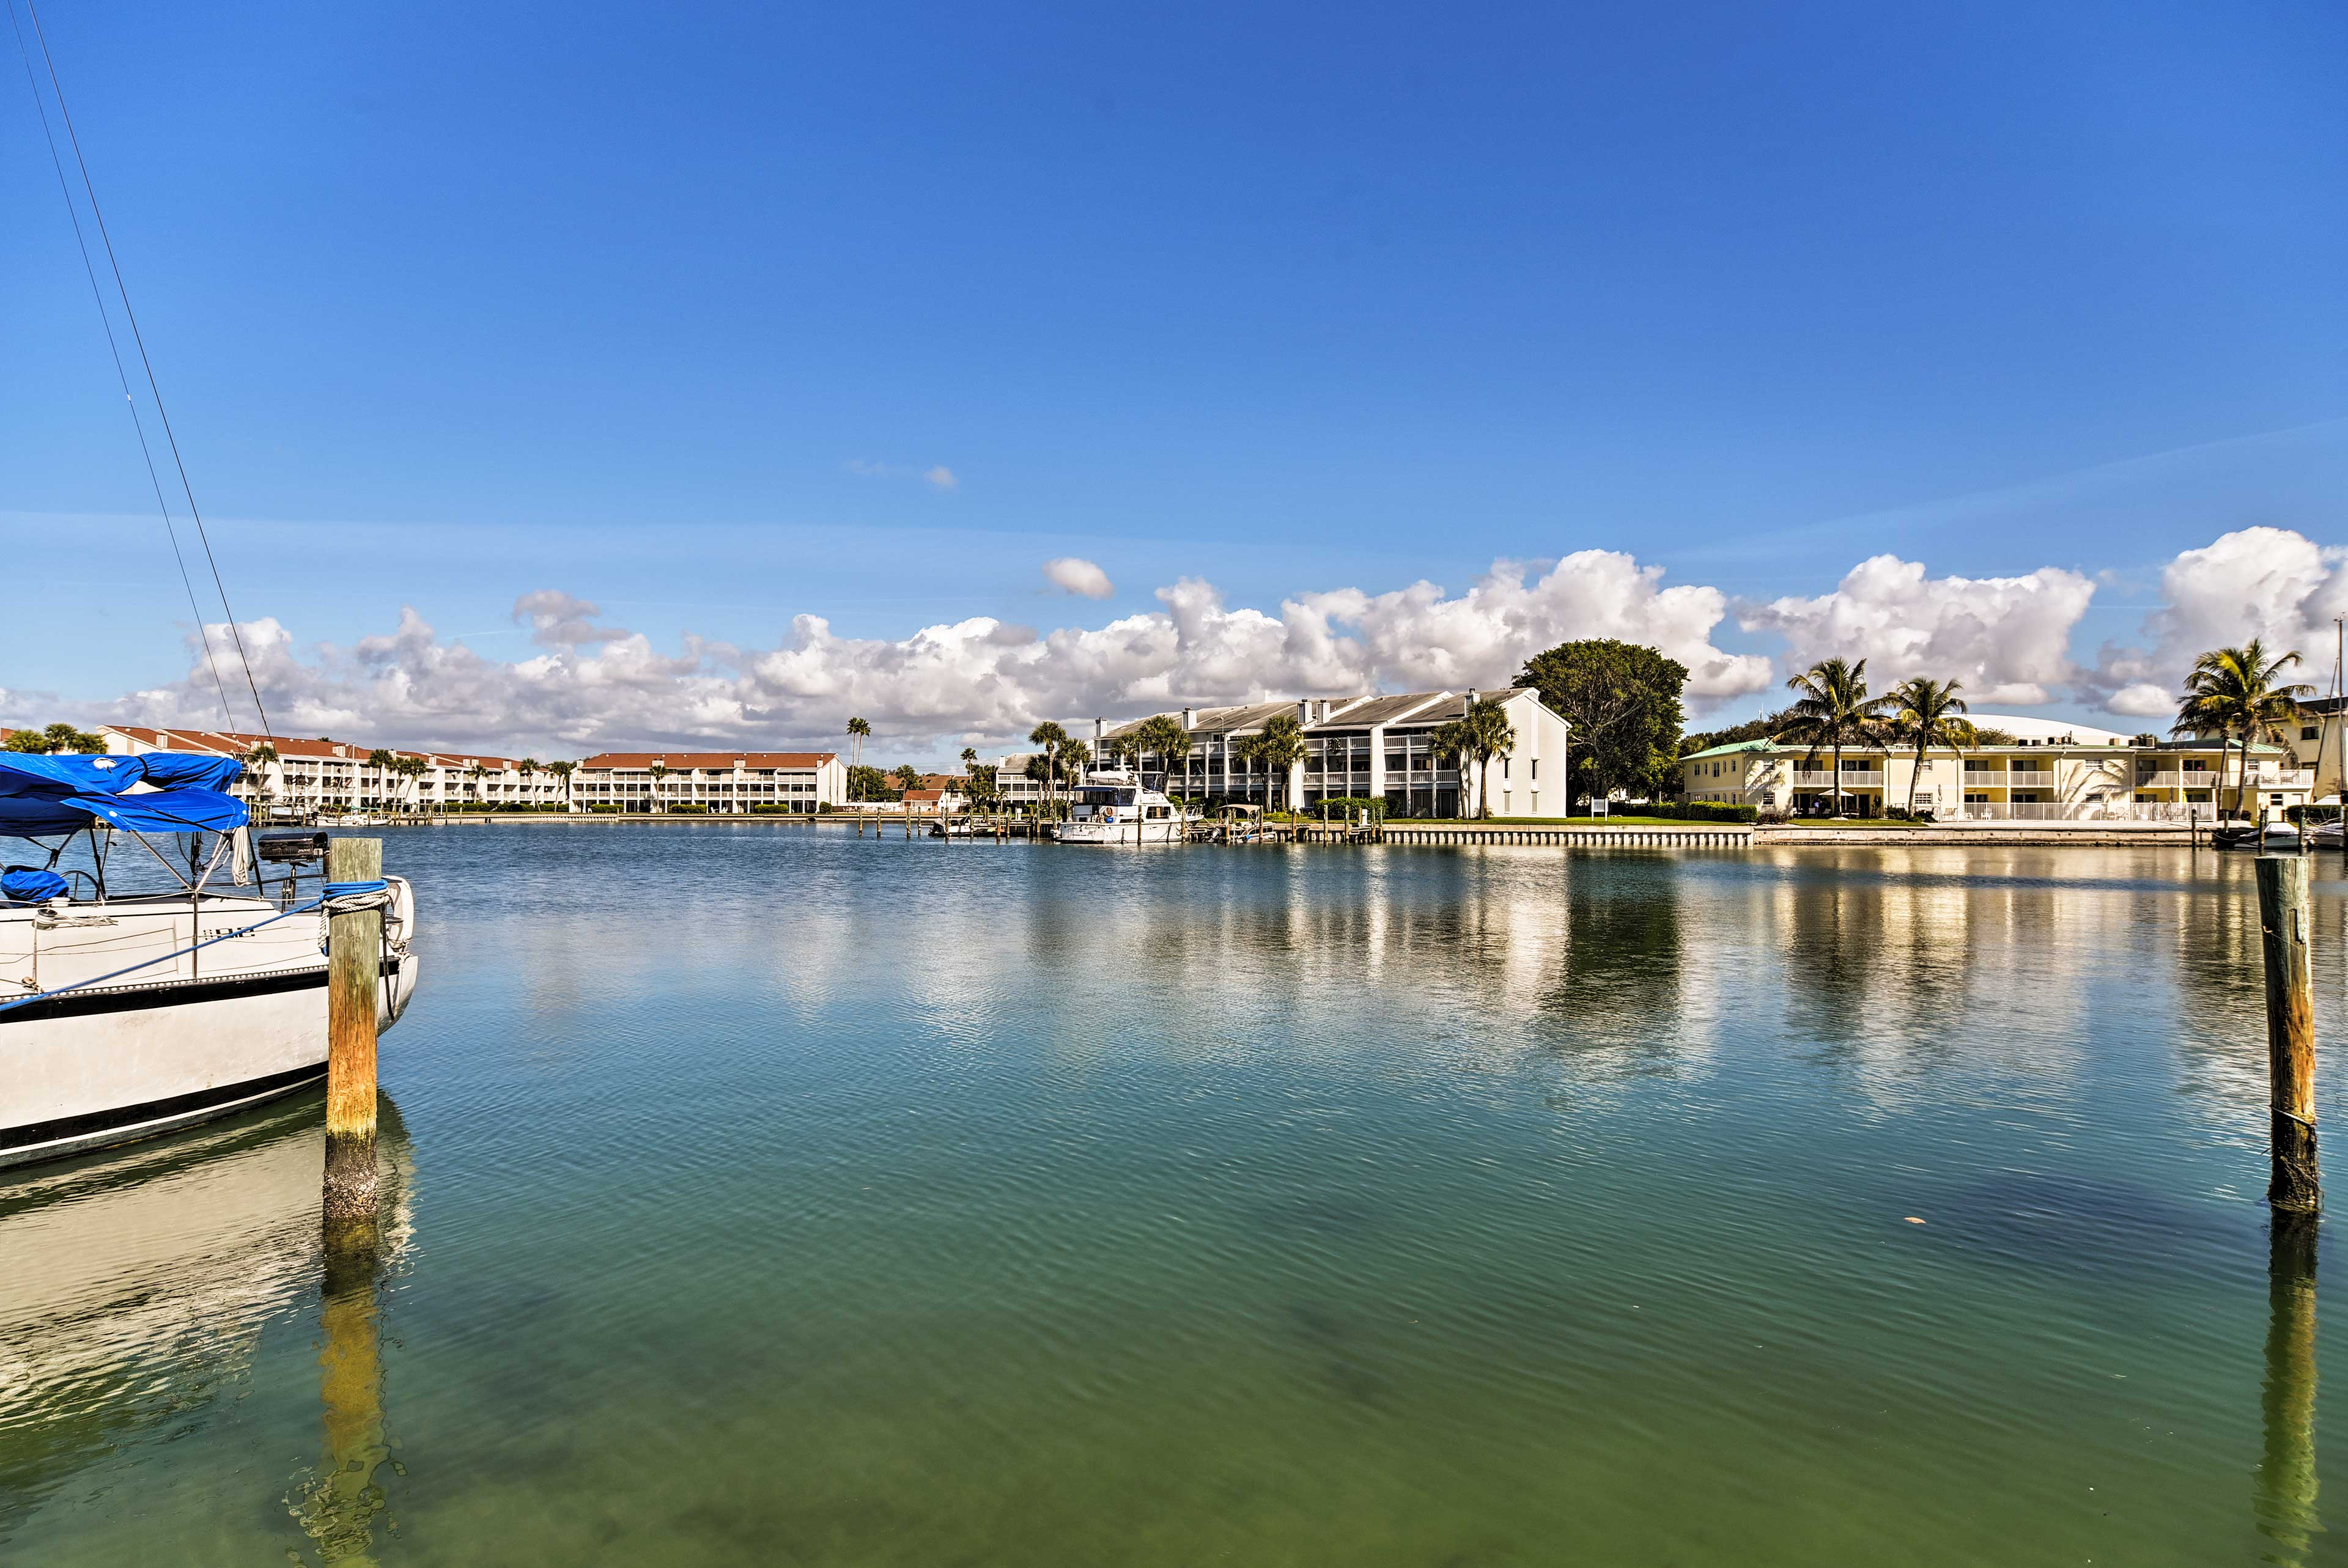 Book now to secure your spot in this unbeatable Treasure Island location!